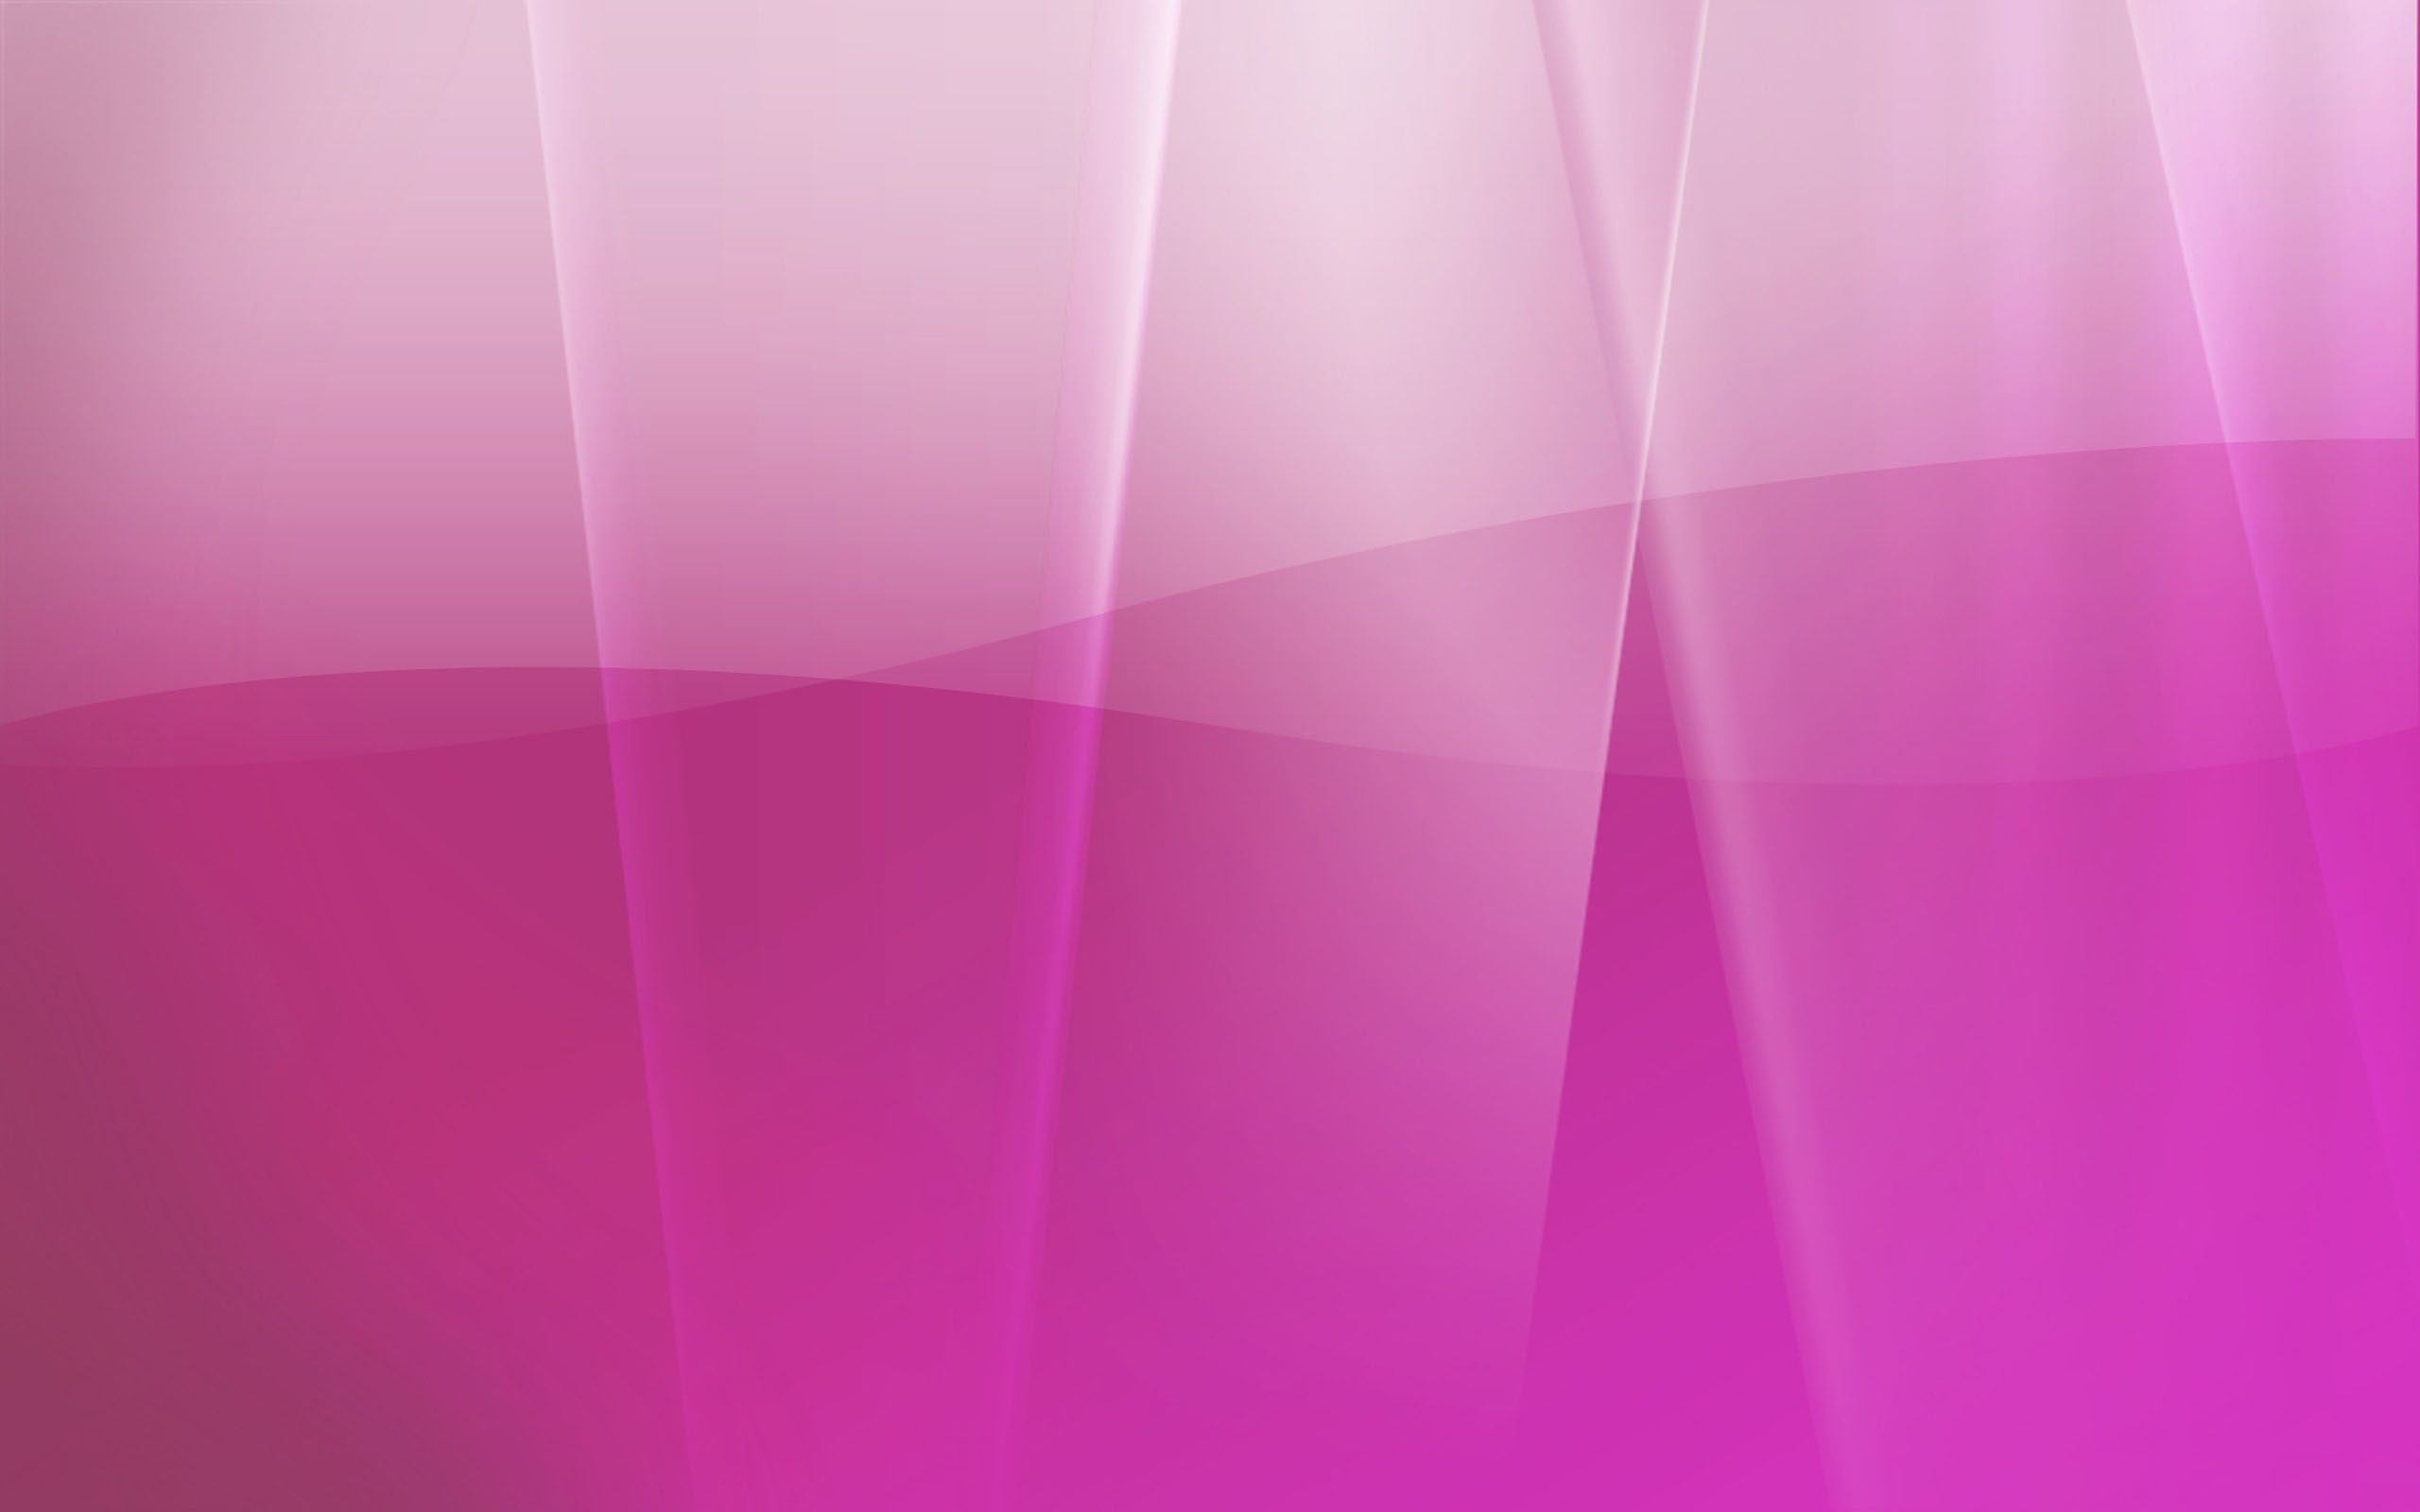 solid-pink-backgrounds.jpg